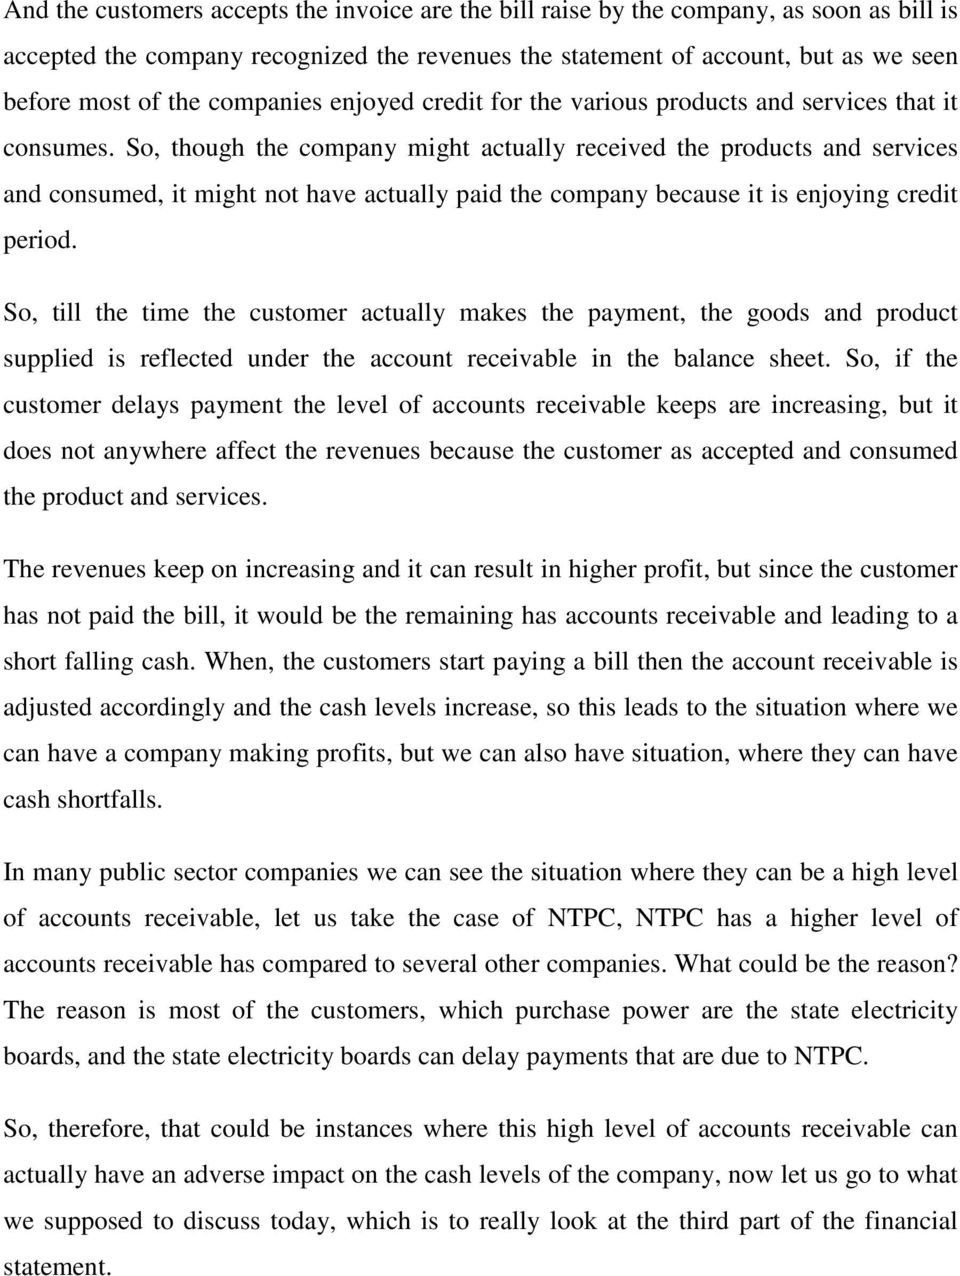 So, though the company might actually received the products and services and consumed, it might not have actually paid the company because it is enjoying credit period.